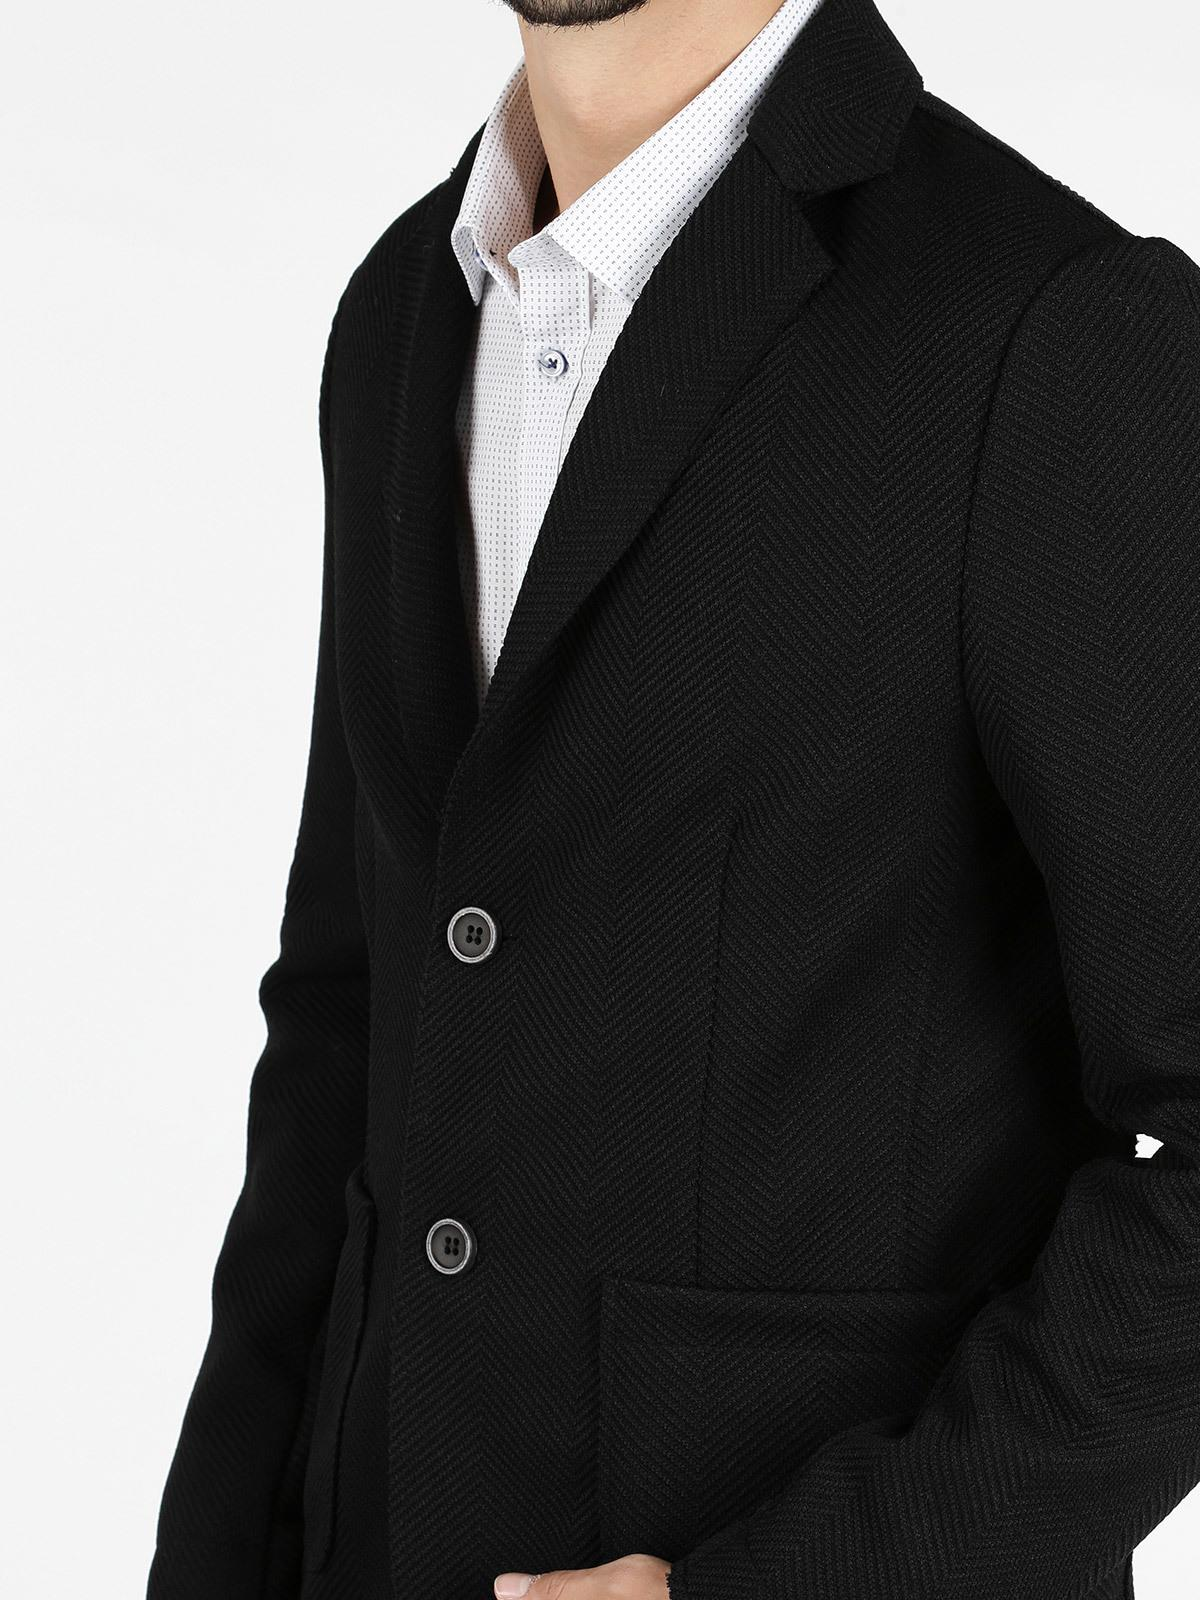 premium selection 00450 d40d1 Giacca blazer nera renever | MecShopping